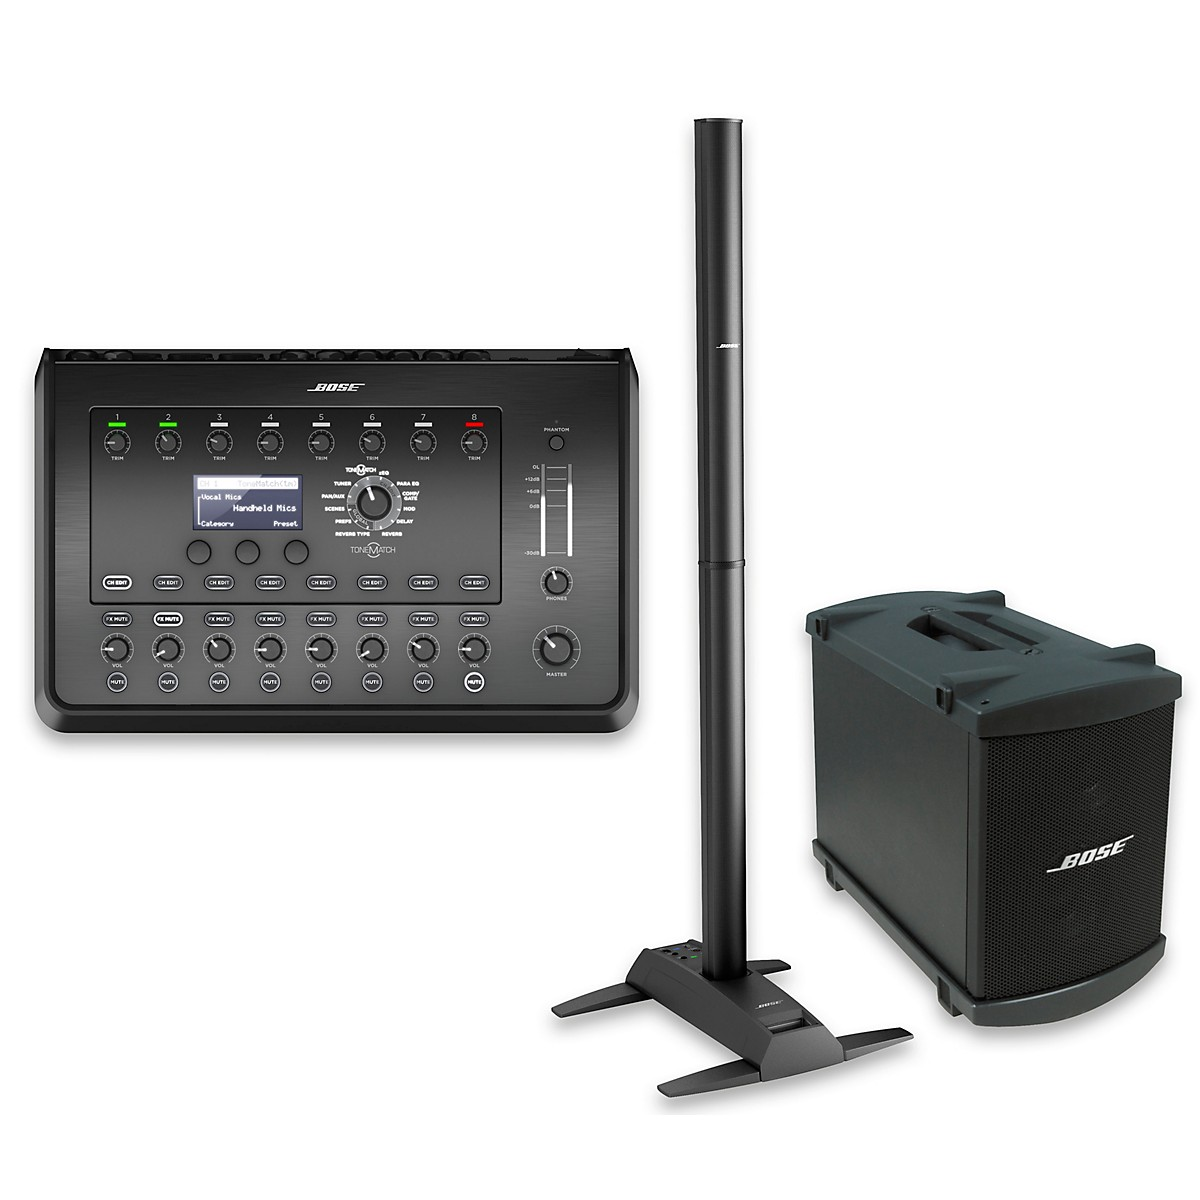 Bose L1 Model II System with Dual B1 Bass Module and T8S Audio Engine